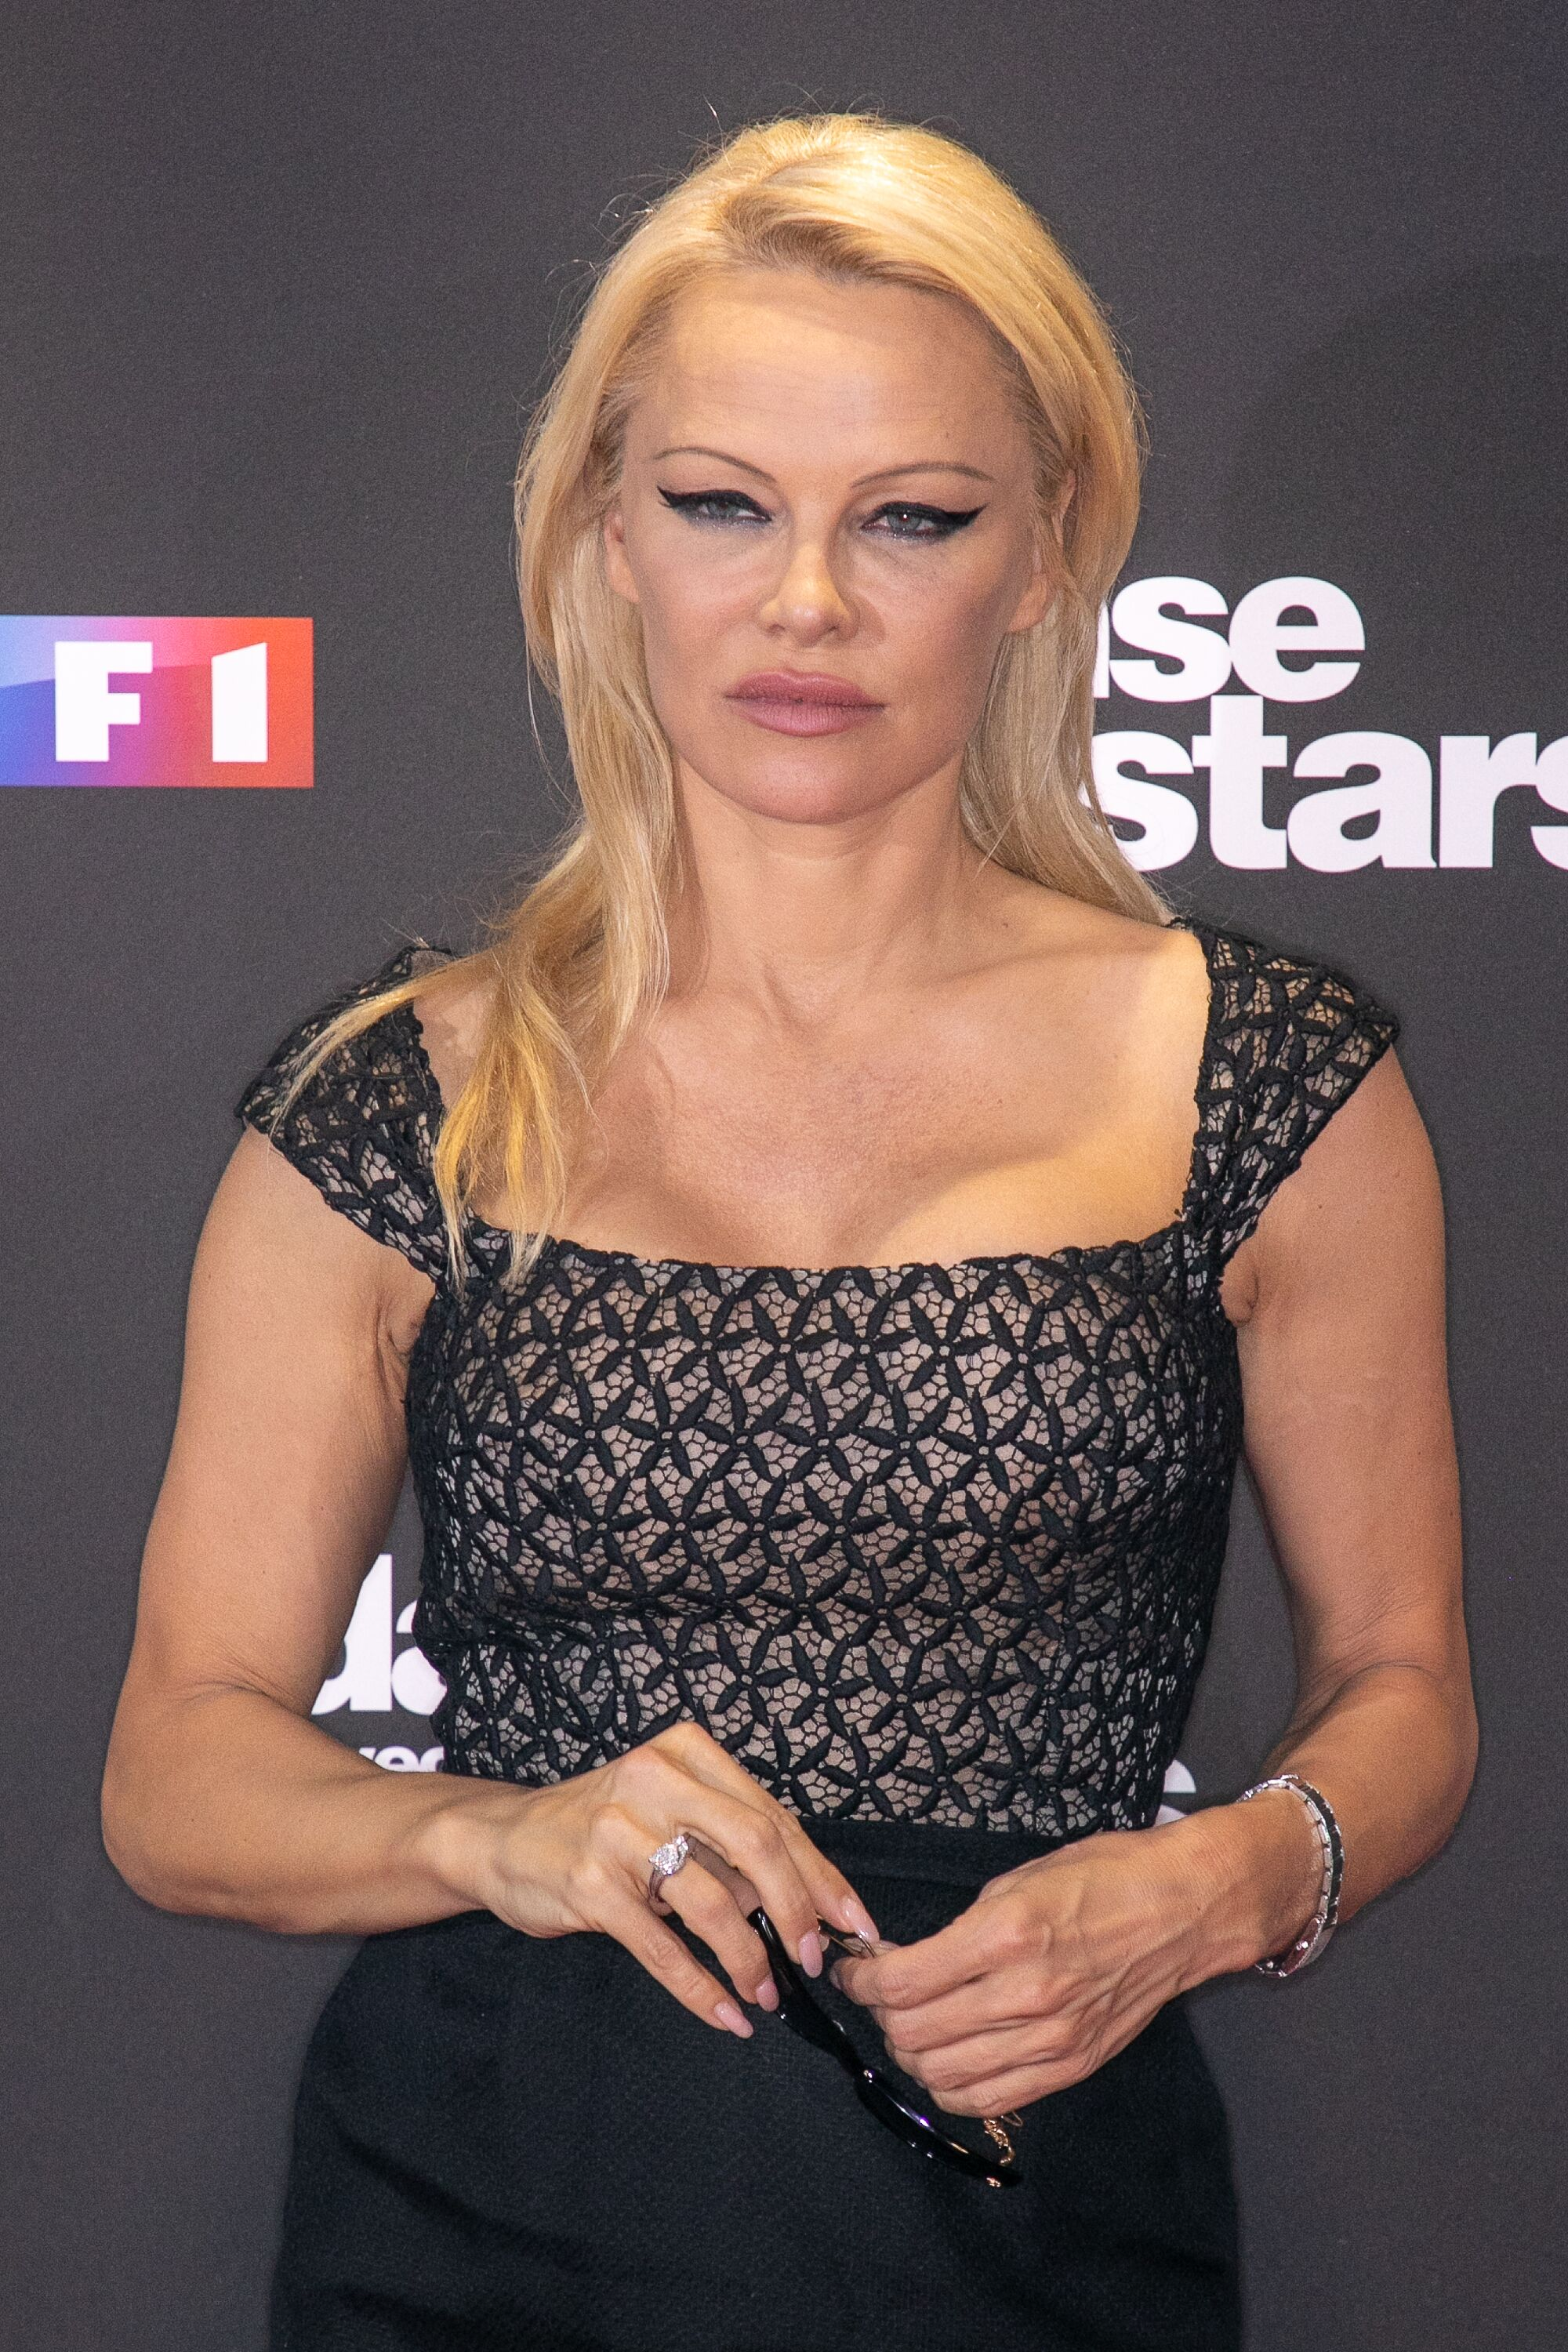 Pamela Anderson attends the 'Danse Avec Les Stars' photocall. | Source: Getty Images